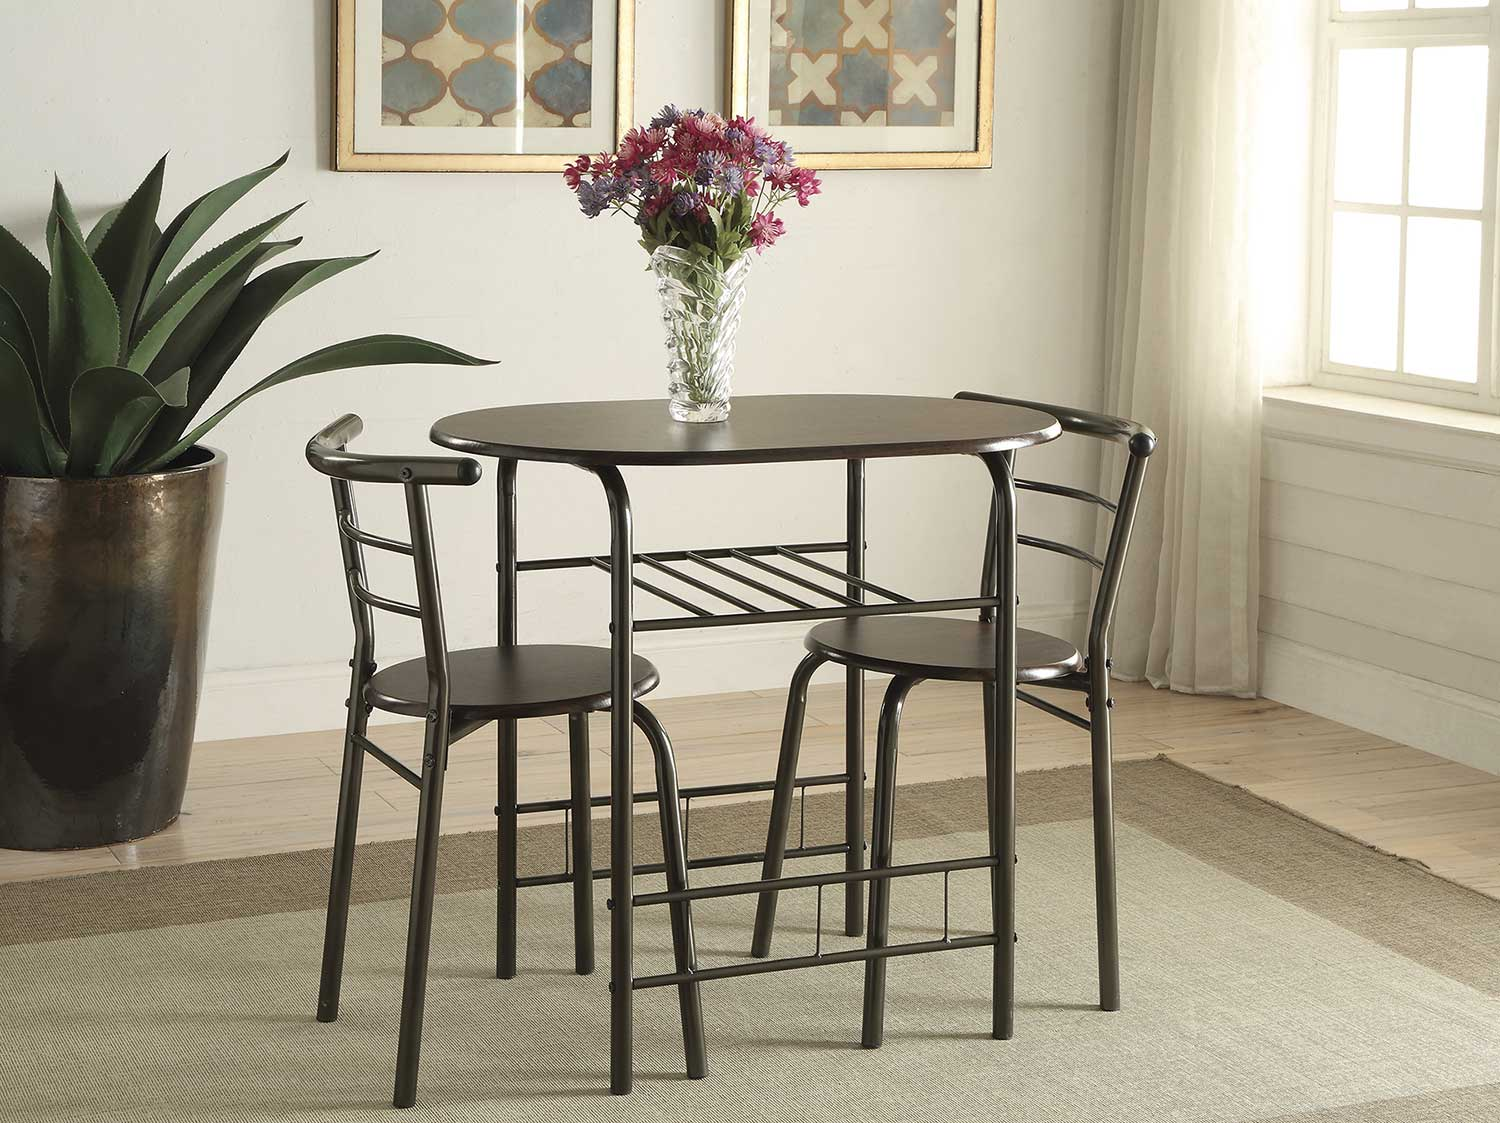 Coaster 150128 3 PC Dinette Set - Brown